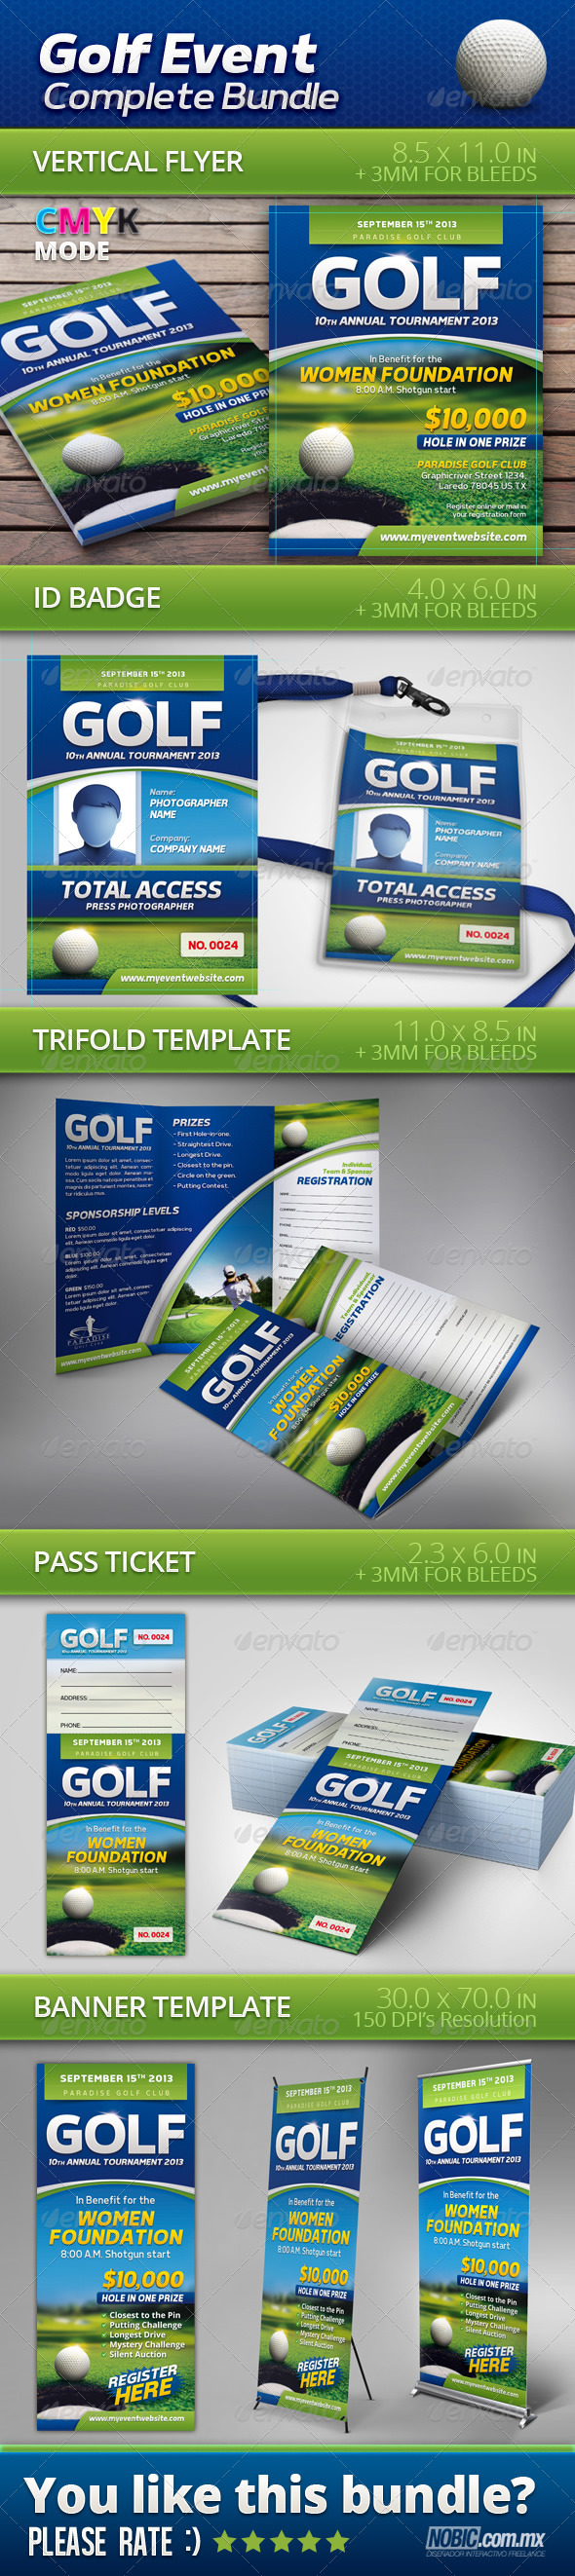 GraphicRiver Golf Event Complete Bundle 6971678